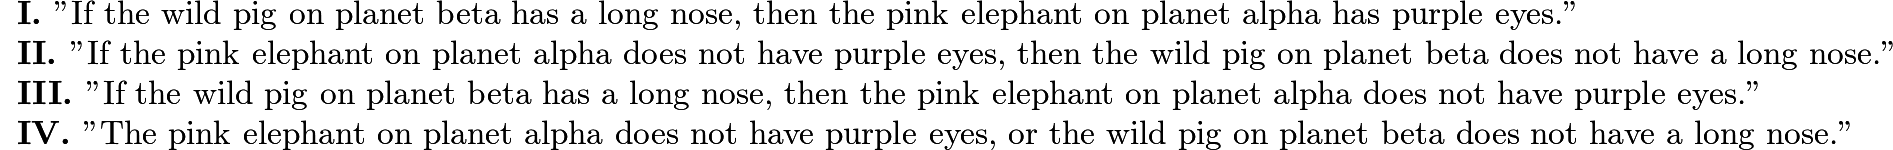 "$\begin{array}{l}\textbf{I. }\text{""If the wild pig on planet beta has a long nose, then the pink elephant on planet alpha has purple eyes.""}\\ \textbf{II. }\text{""If the pink elephant on planet alpha does not have purple eyes, then the wild pig on planet beta does not have a long nose.""}\\ \textbf{III. }\text{""If the wild pig on planet beta has a long nose, then the pink elephant on planet alpha does not have purple eyes.""}\\ \textbf{IV. }\text{""The pink elephant on planet alpha does not have purple eyes, or the wild pig on planet beta does not have a long nose.""}\end{array}$"